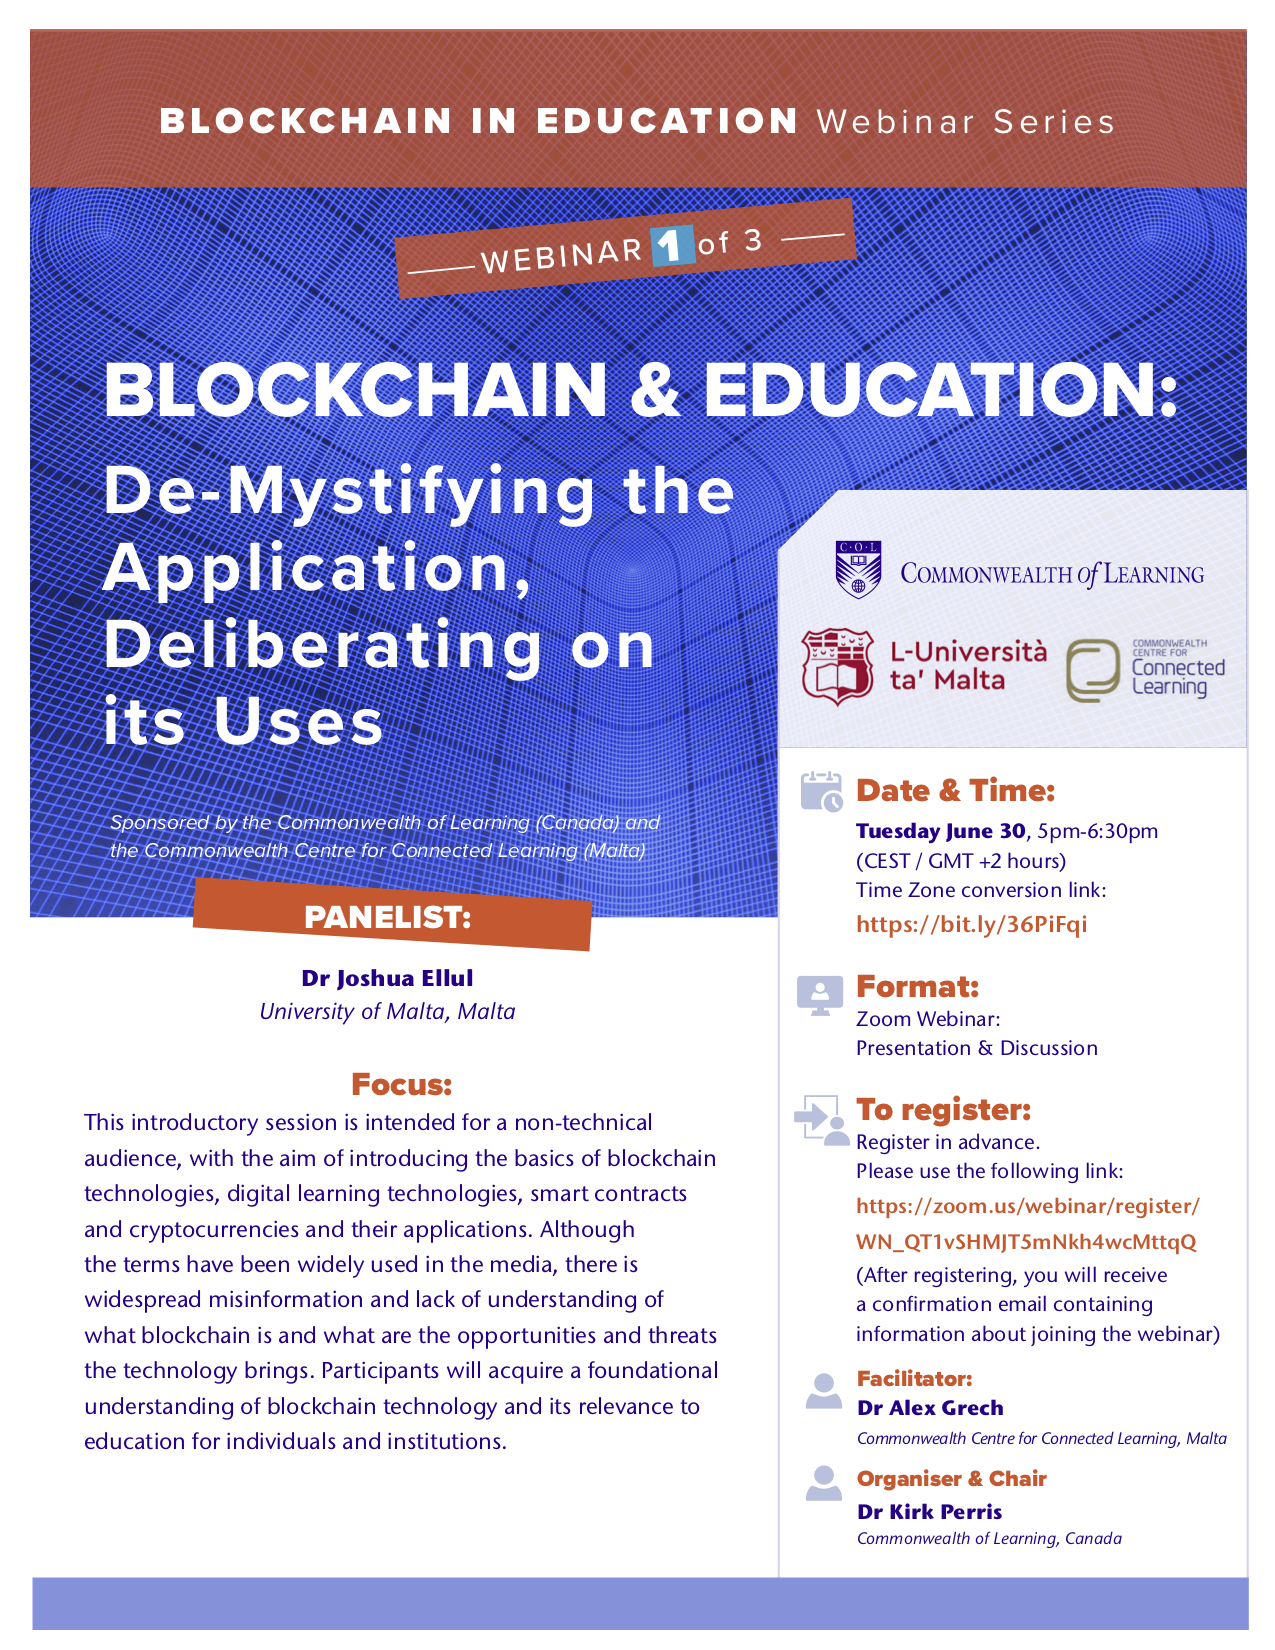 Blockchain & Education Webinar